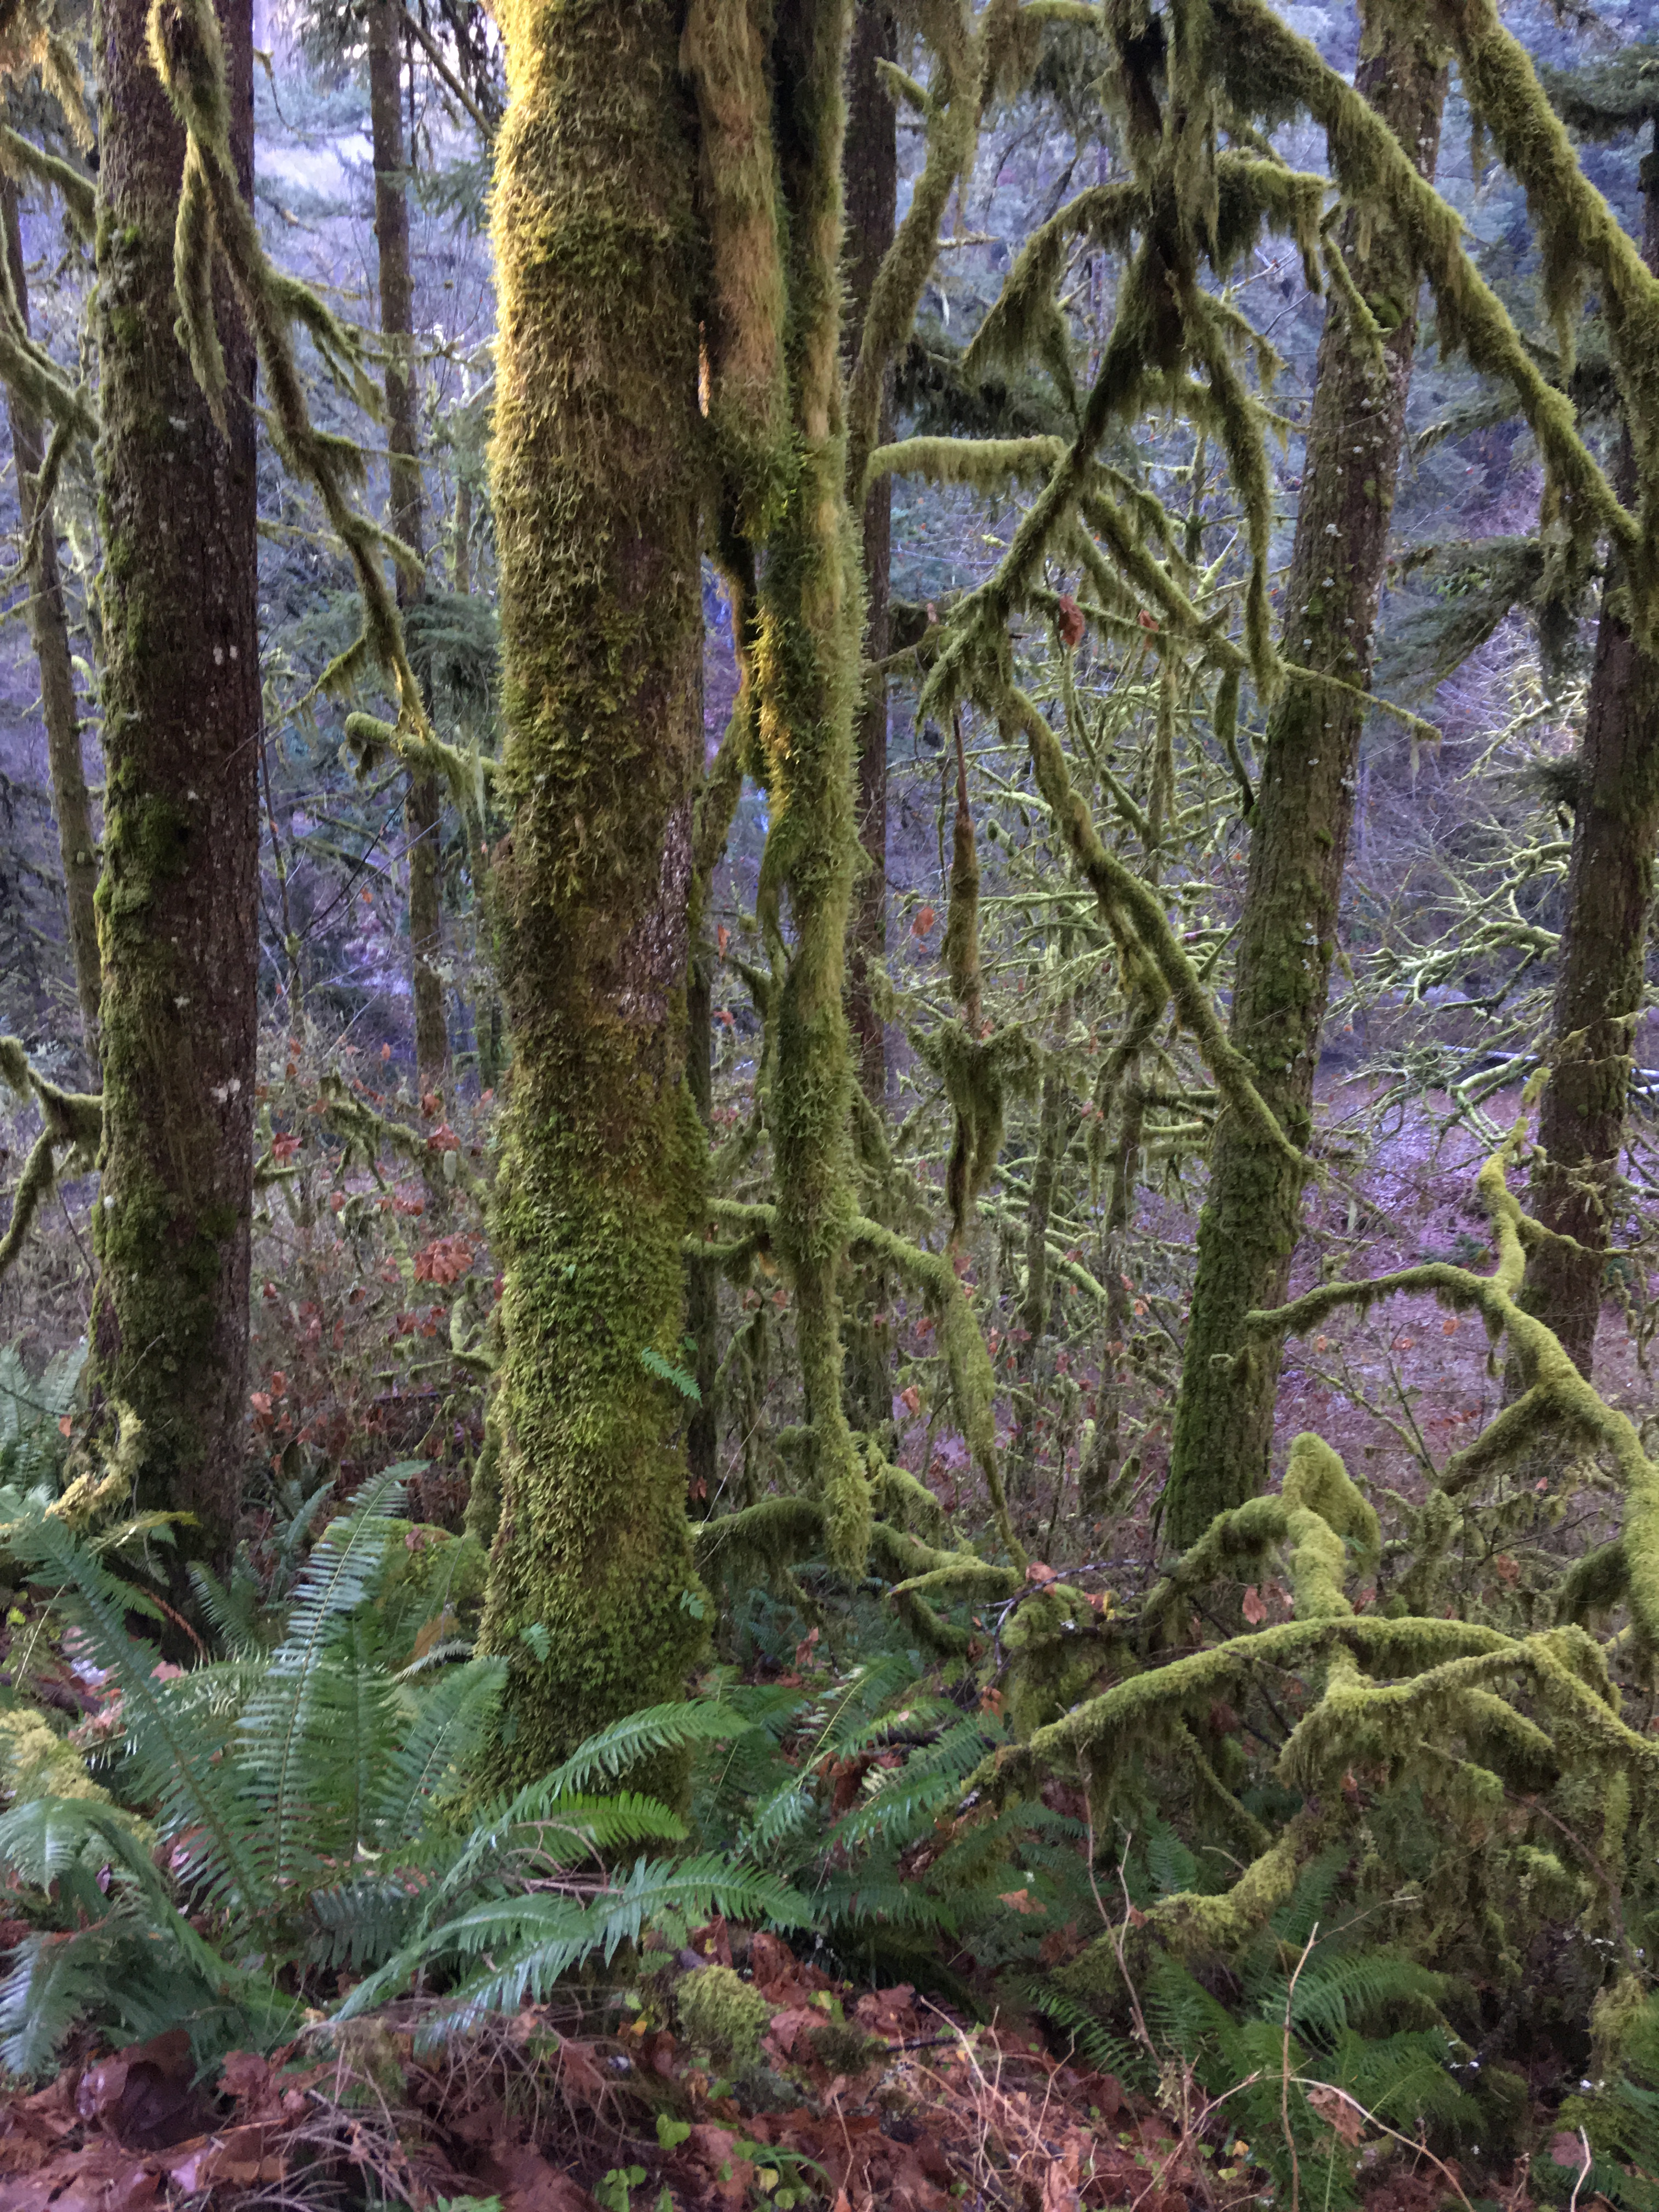 The rain forest of Silver Falls State Park